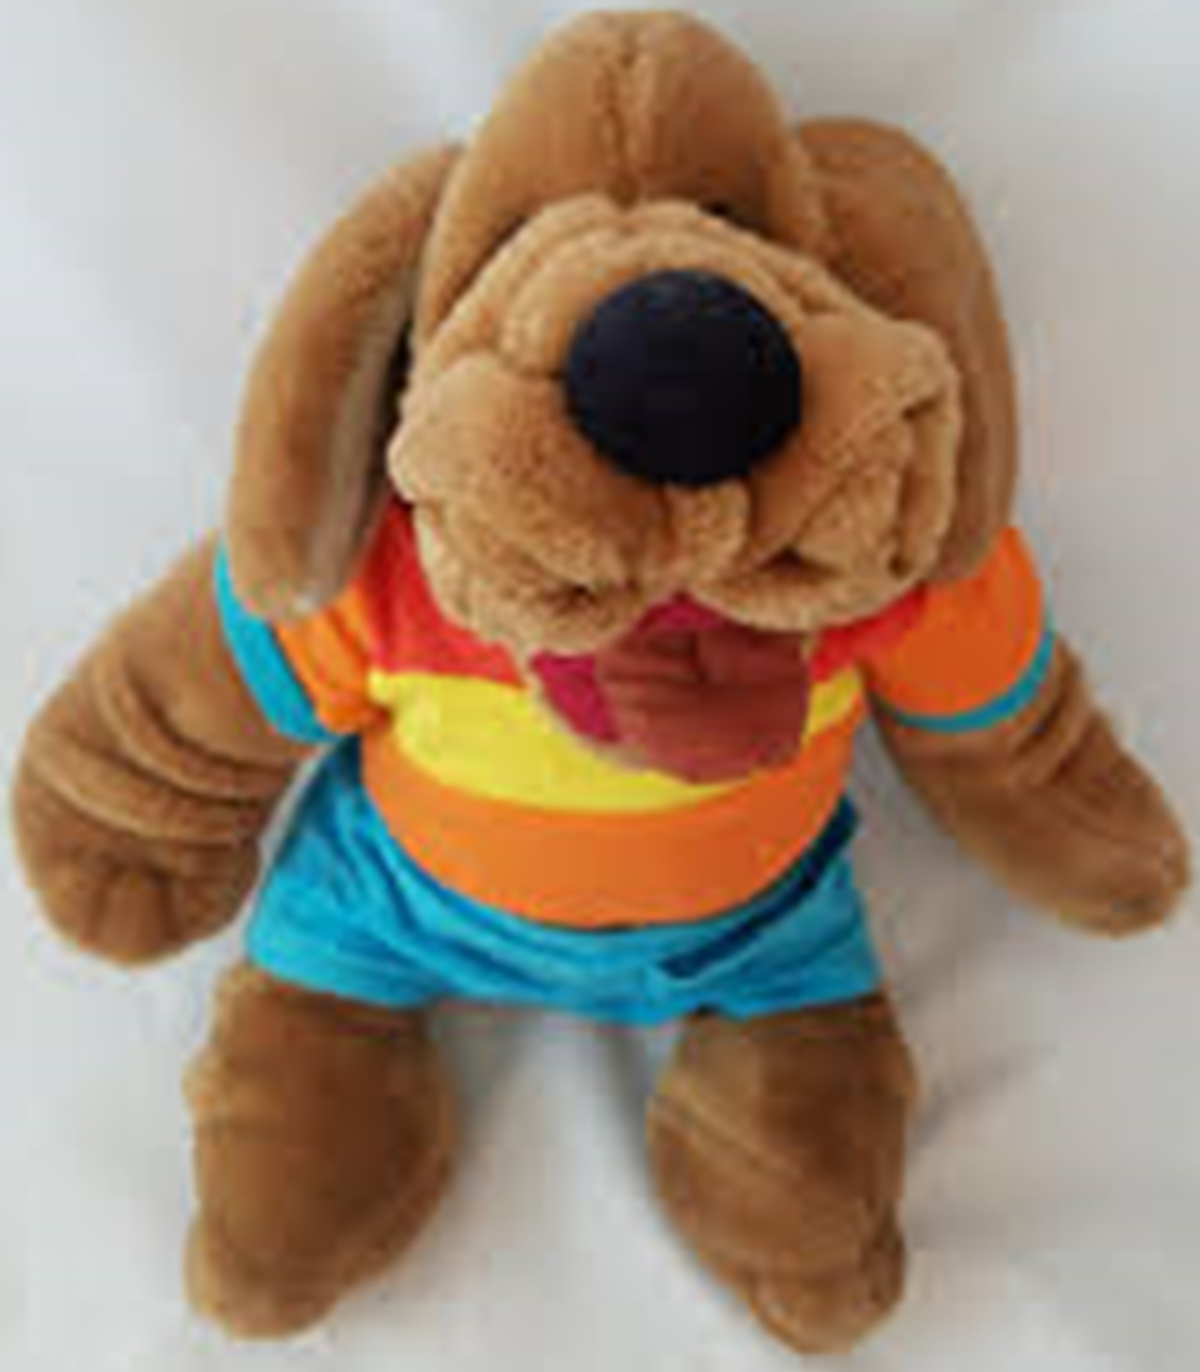 15 7 QUIZ: How Many Of These 15 Cuddly Toys Did YOU Own As A Child?